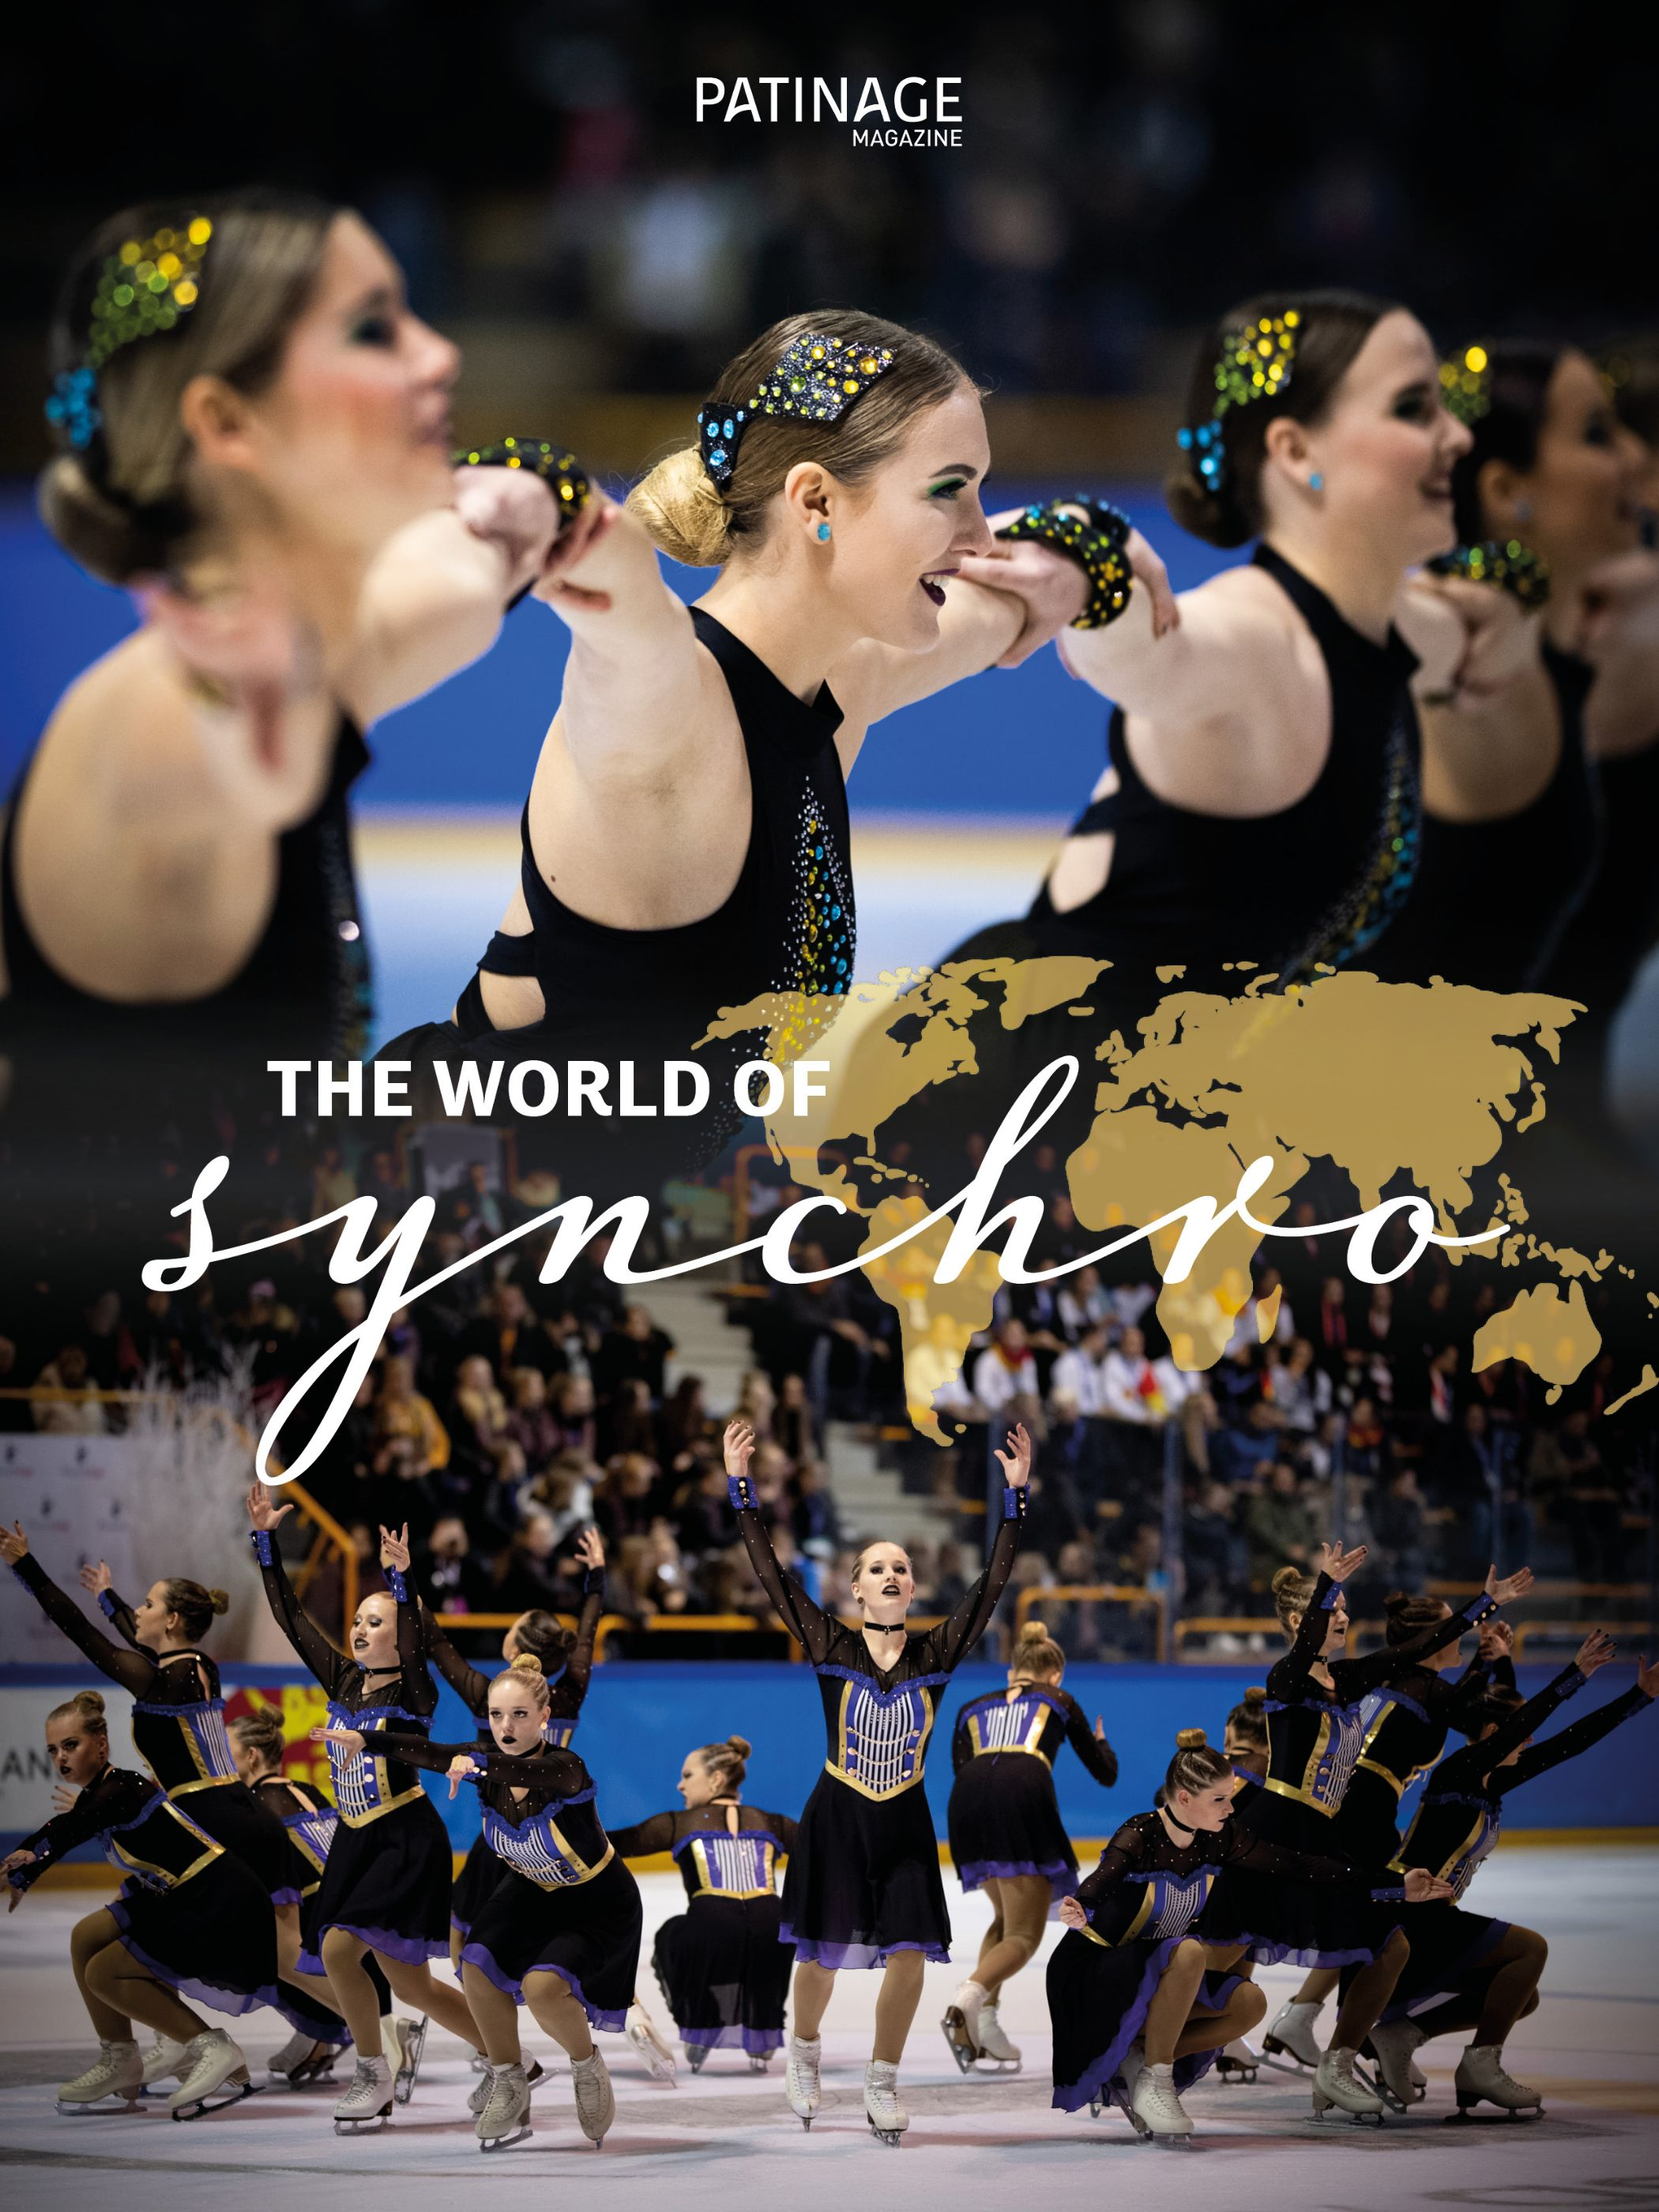 Pre-order The World of Synchro